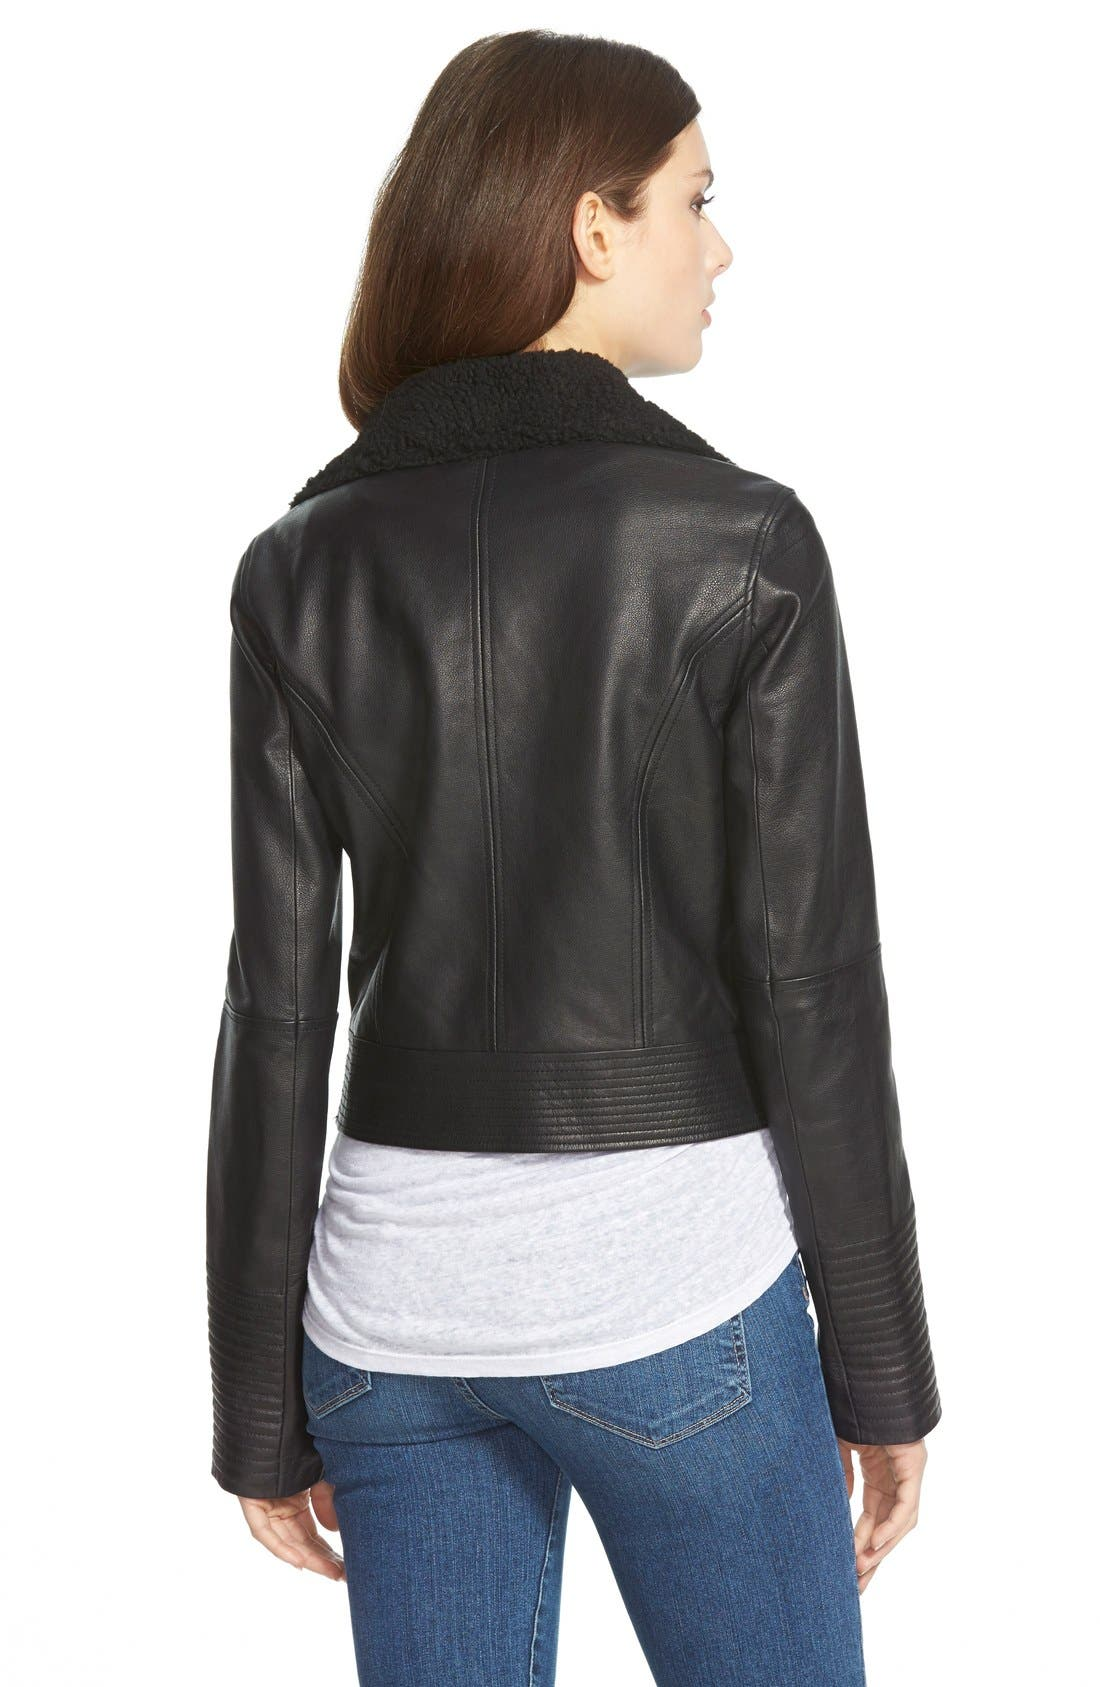 Denim 'Rooney' Leather Jacket with Faux Shearling Collar,                             Alternate thumbnail 2, color,                             001